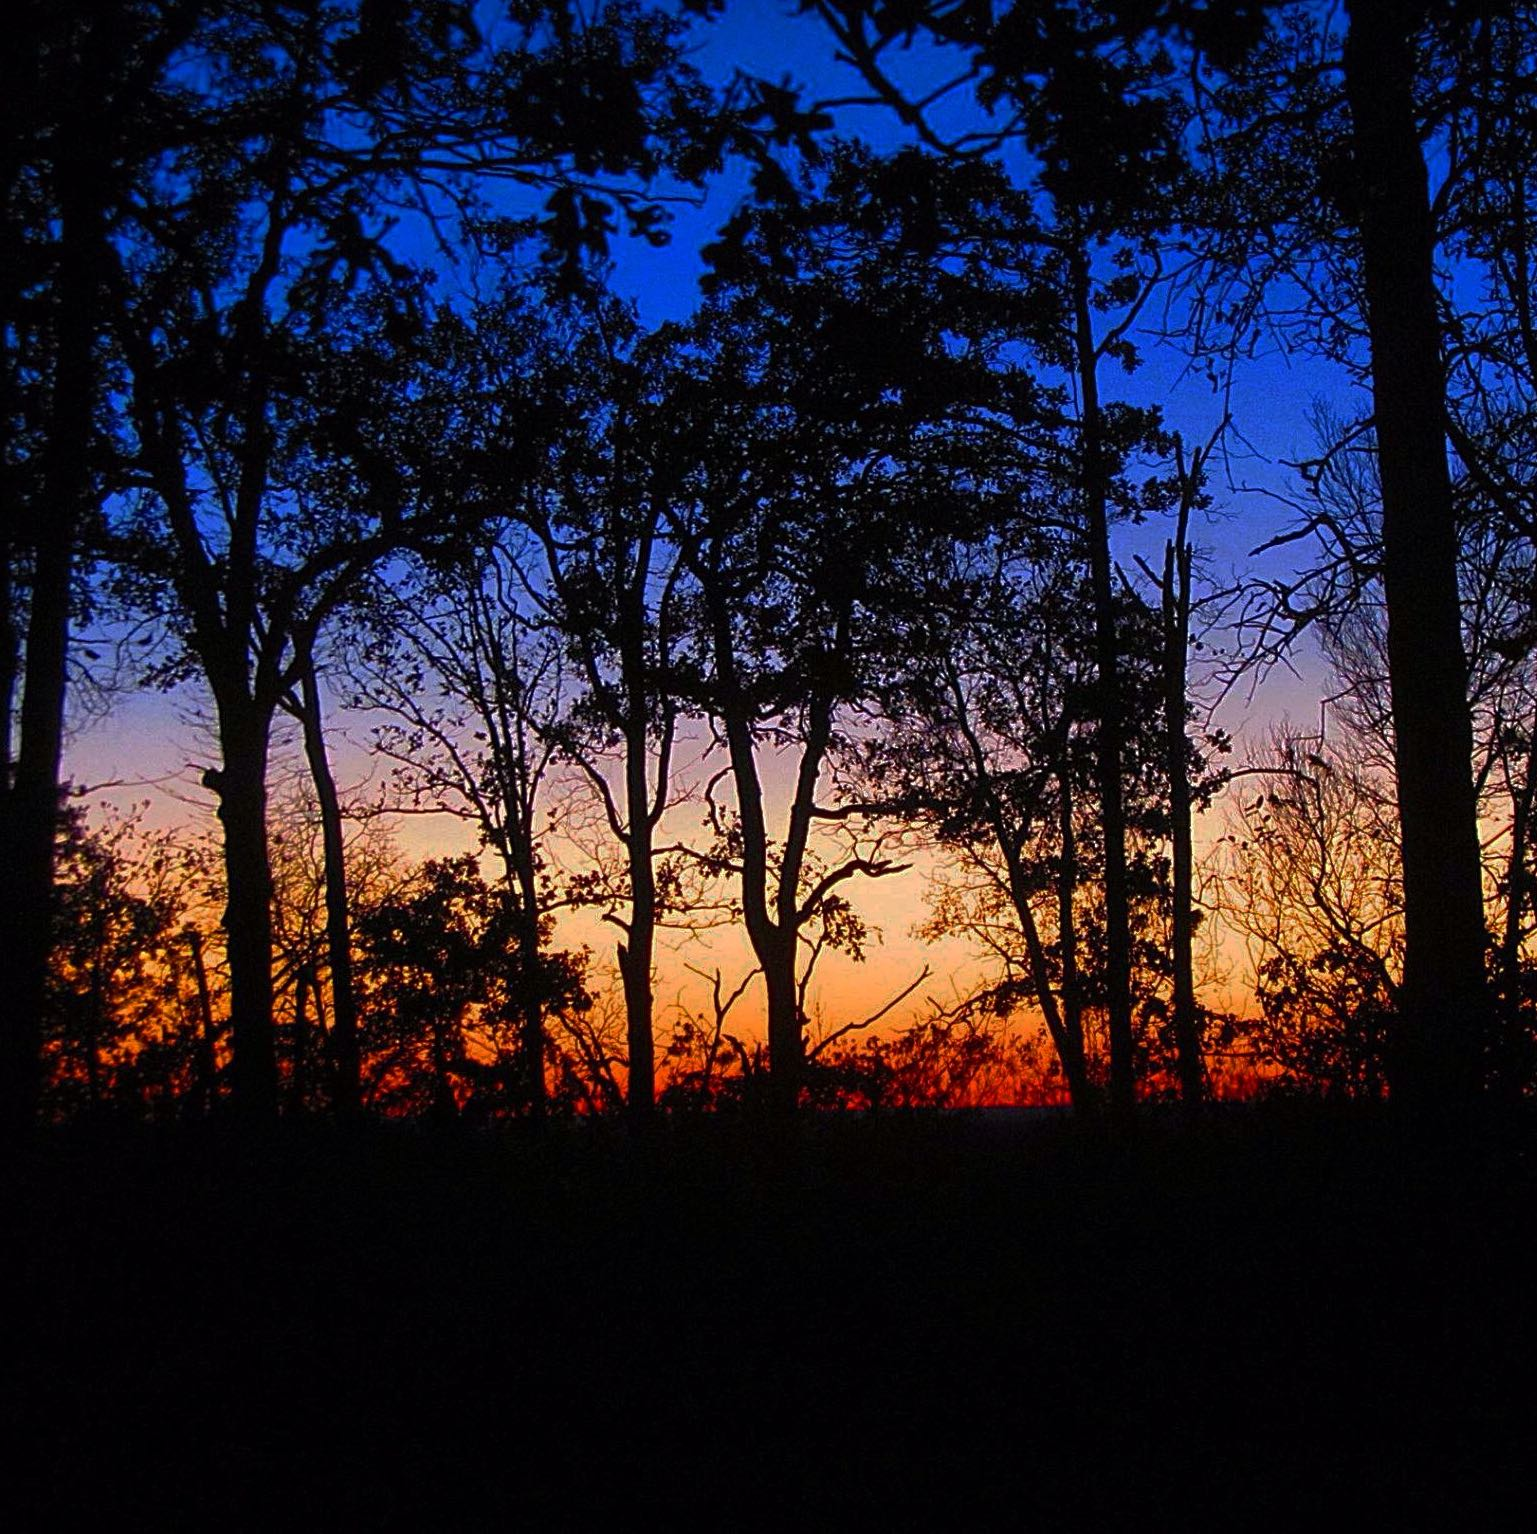 A picture of a colorful sunset with several trees in the foreground.